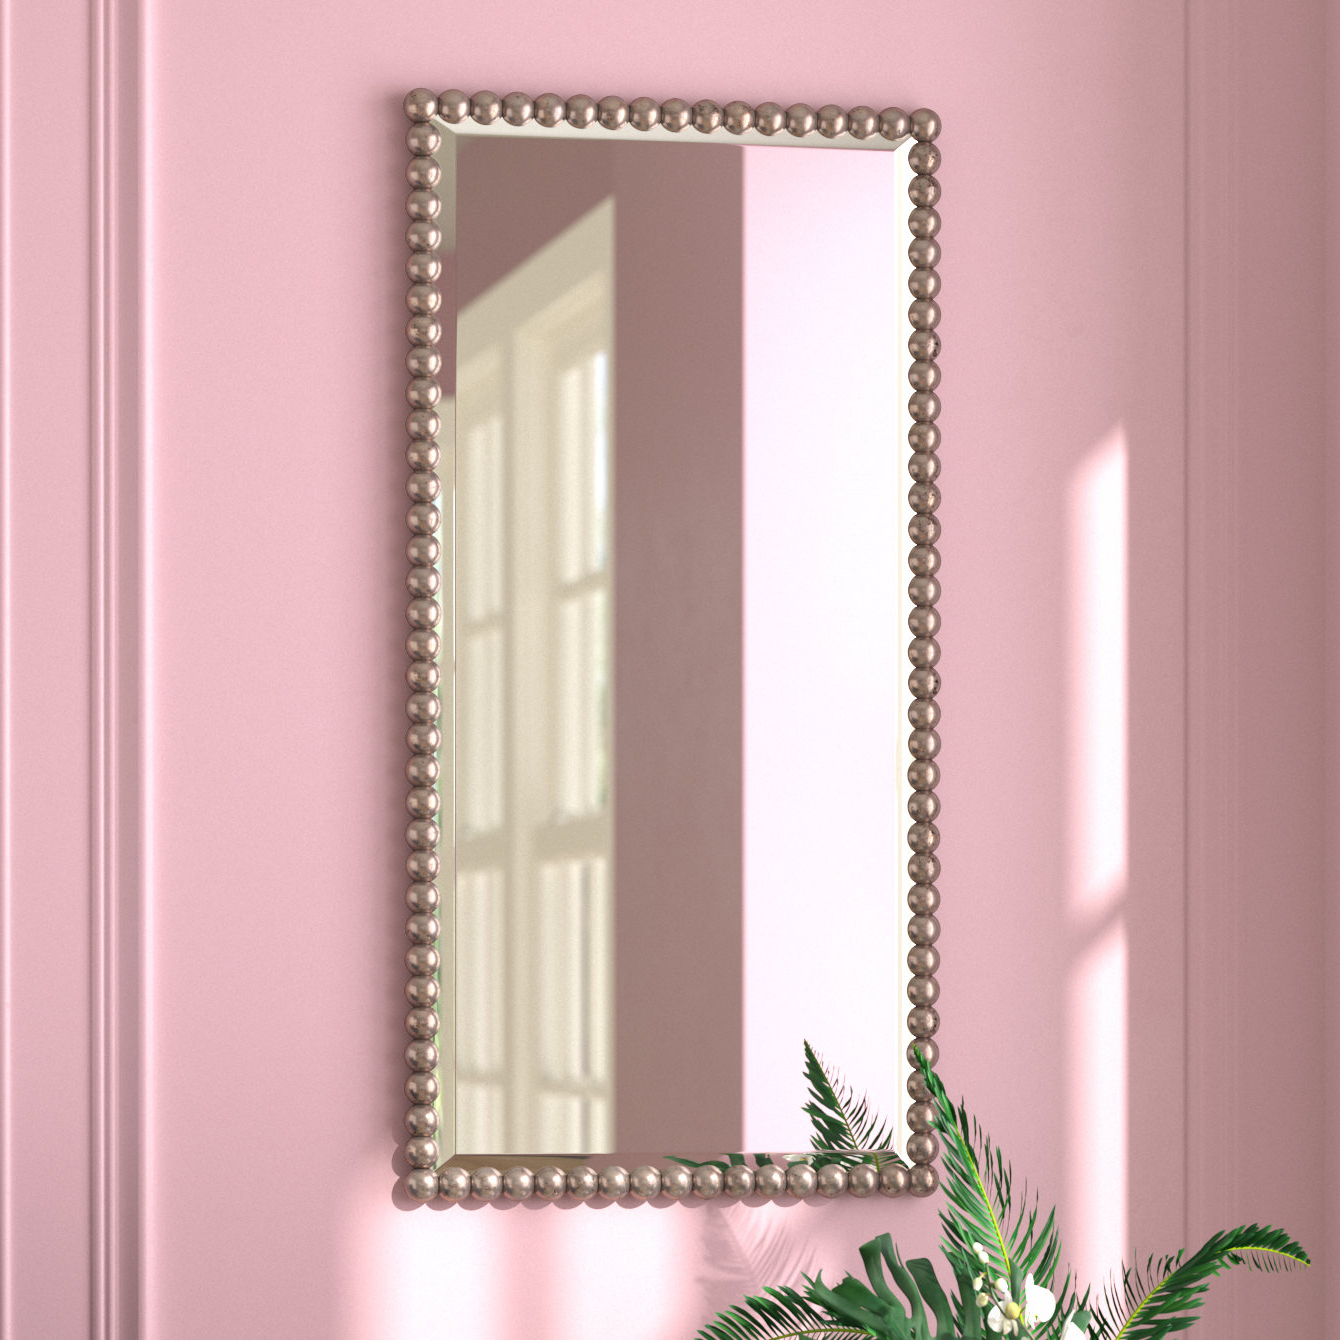 2020 Rectangle Beveled Glass Wall Mirror With Regard To Glass Wall Mirrors (View 18 of 20)